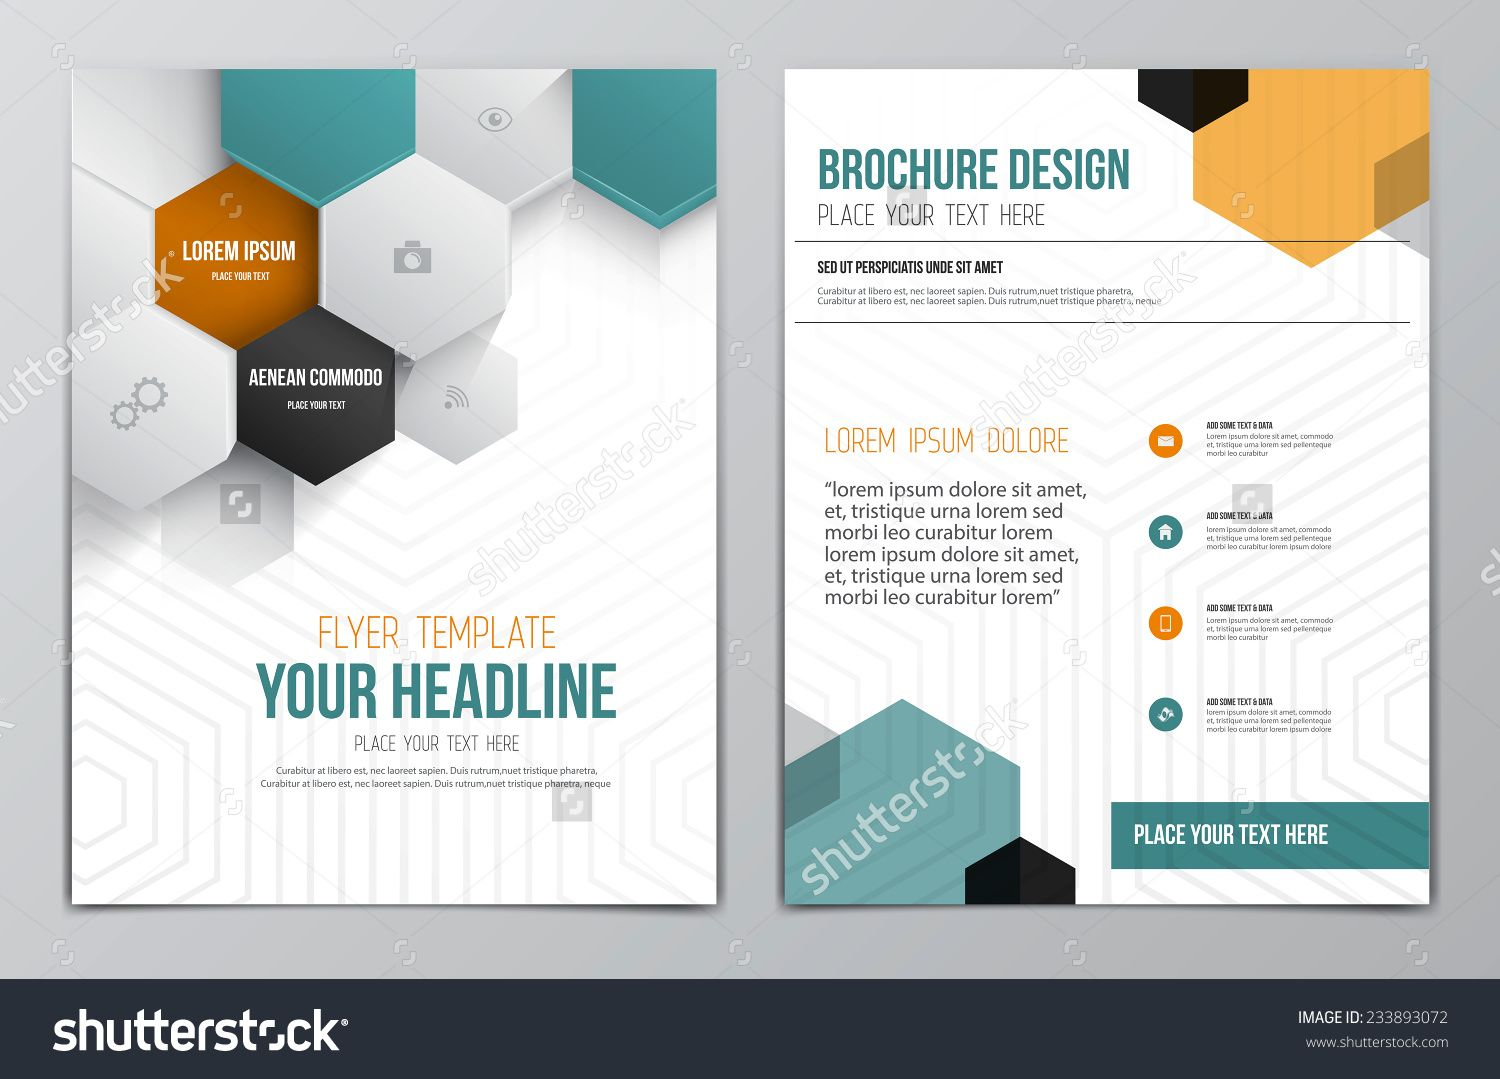 how to design a brochure - brochure design template geometric shapes abstract